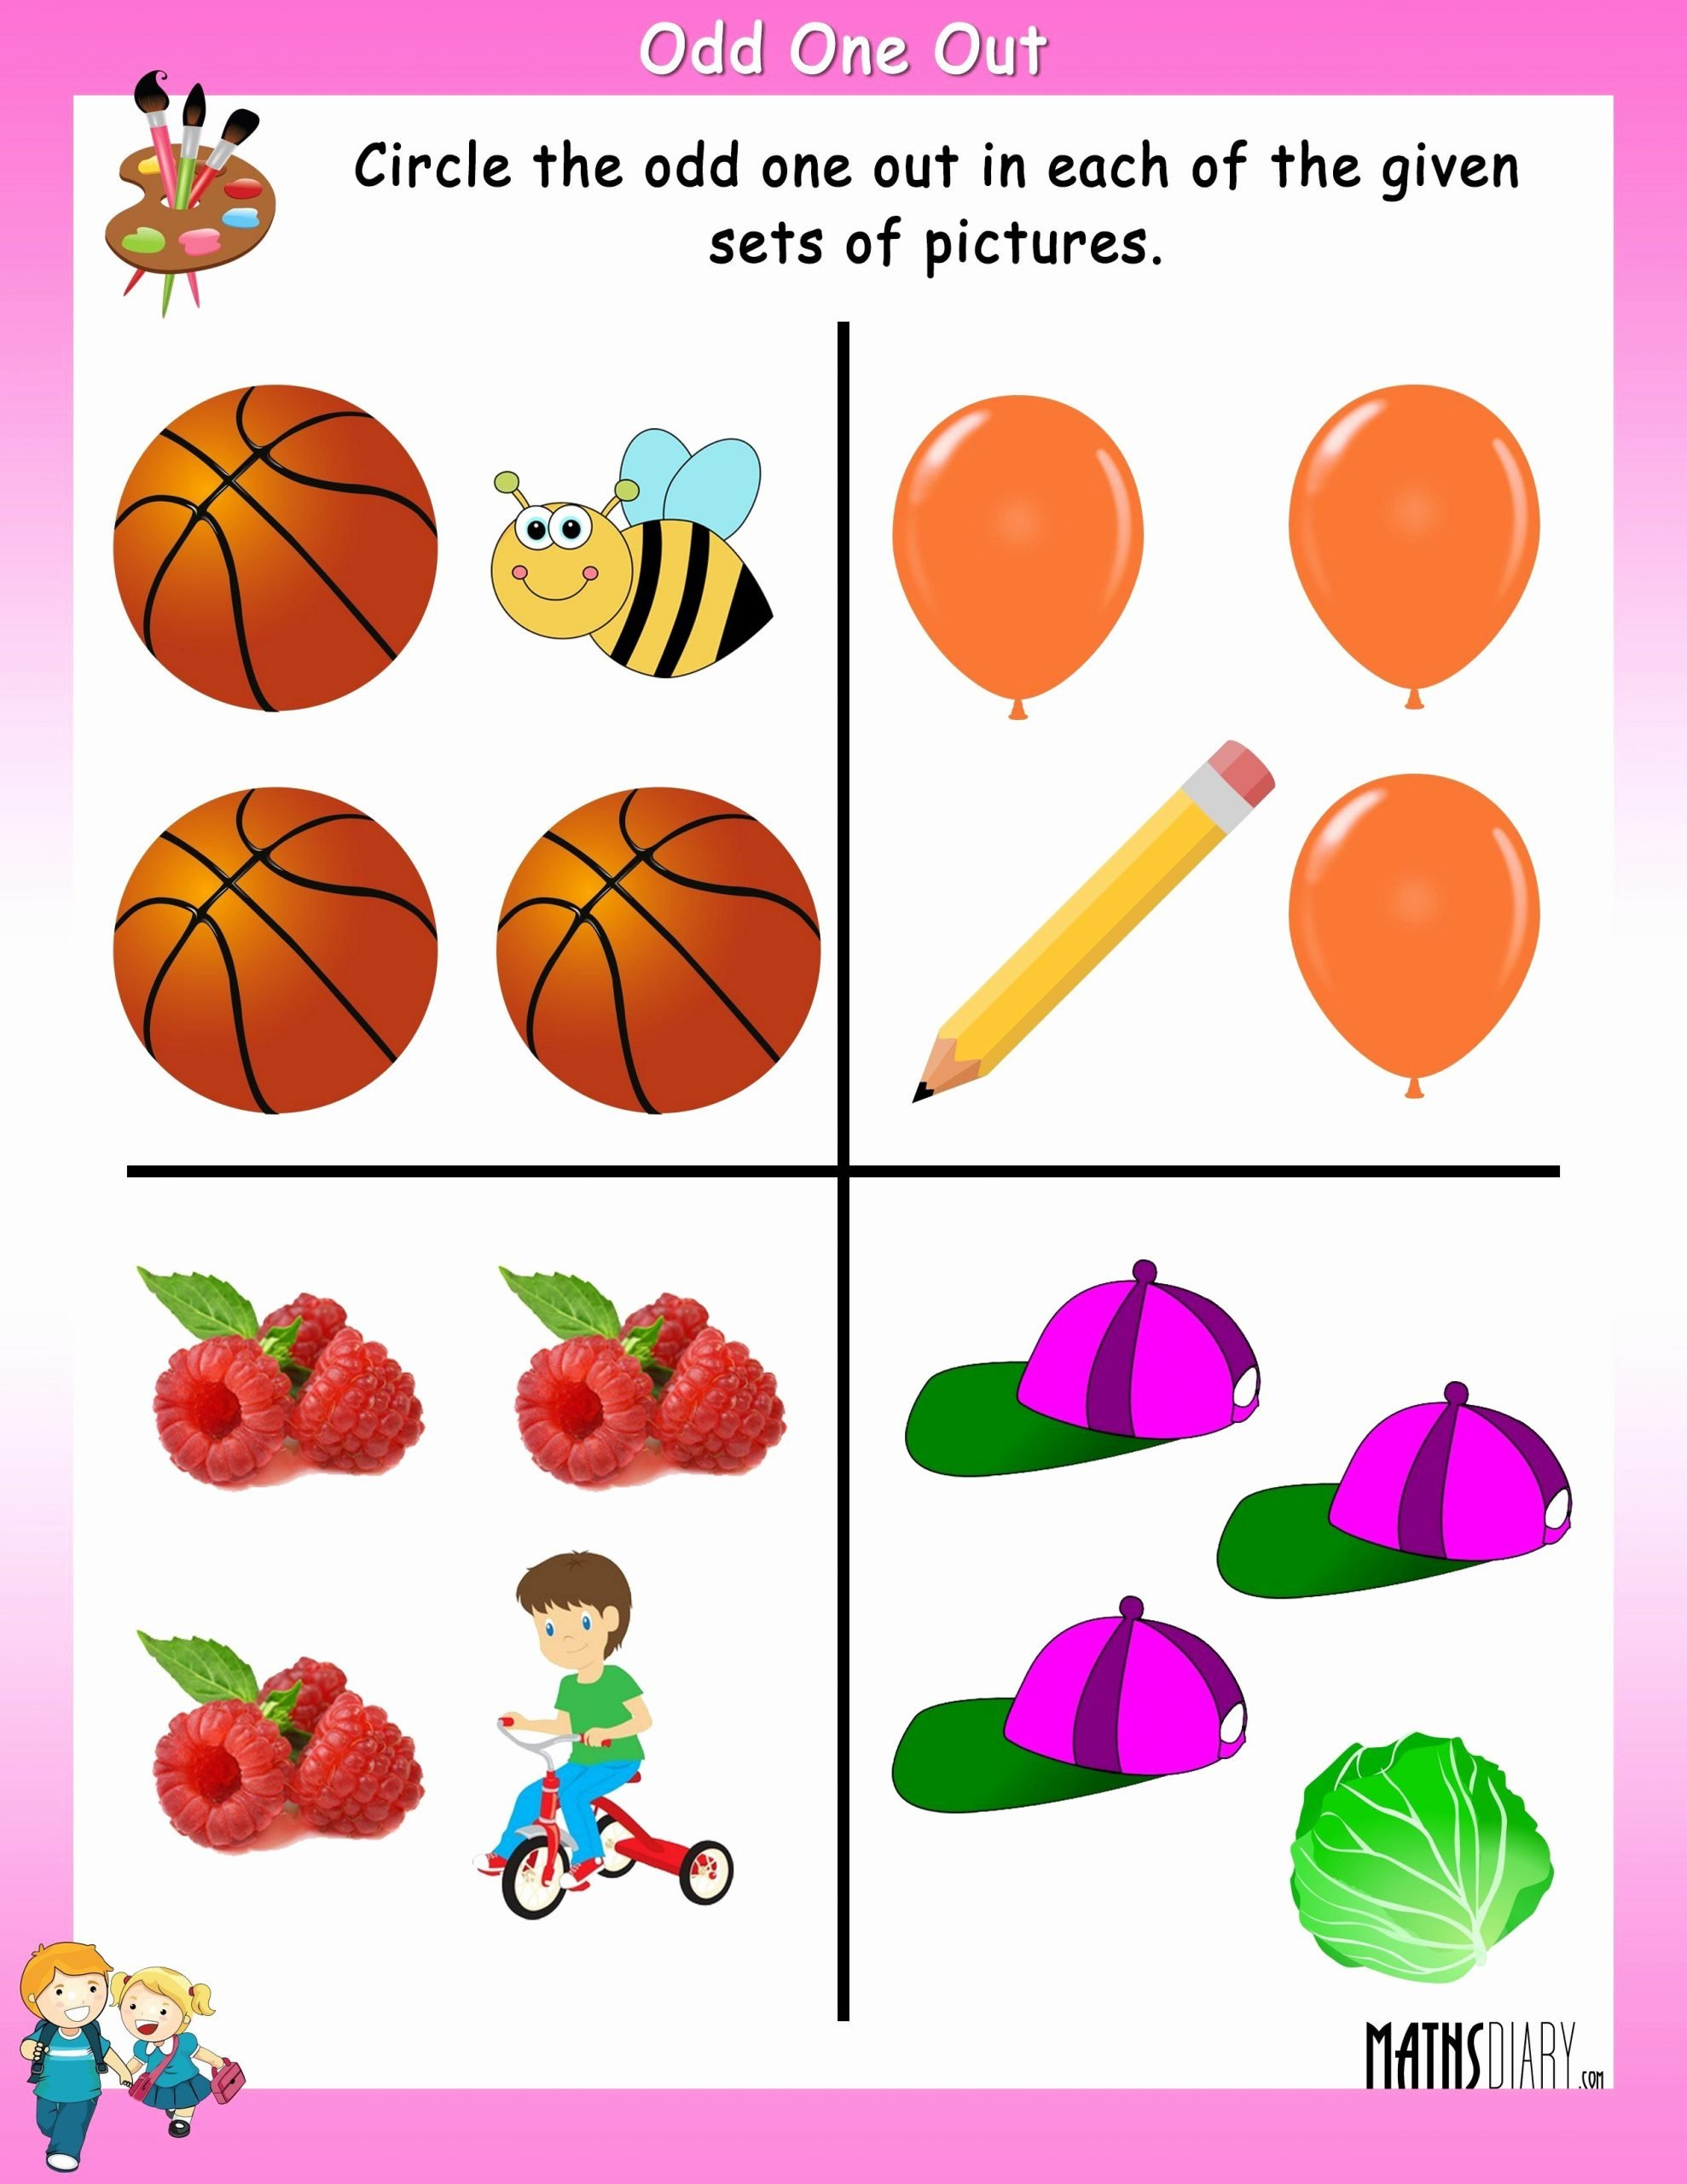 Odd One Out Worksheets for Preschoolers Fresh Circle the Odd One Out Mathsdiary